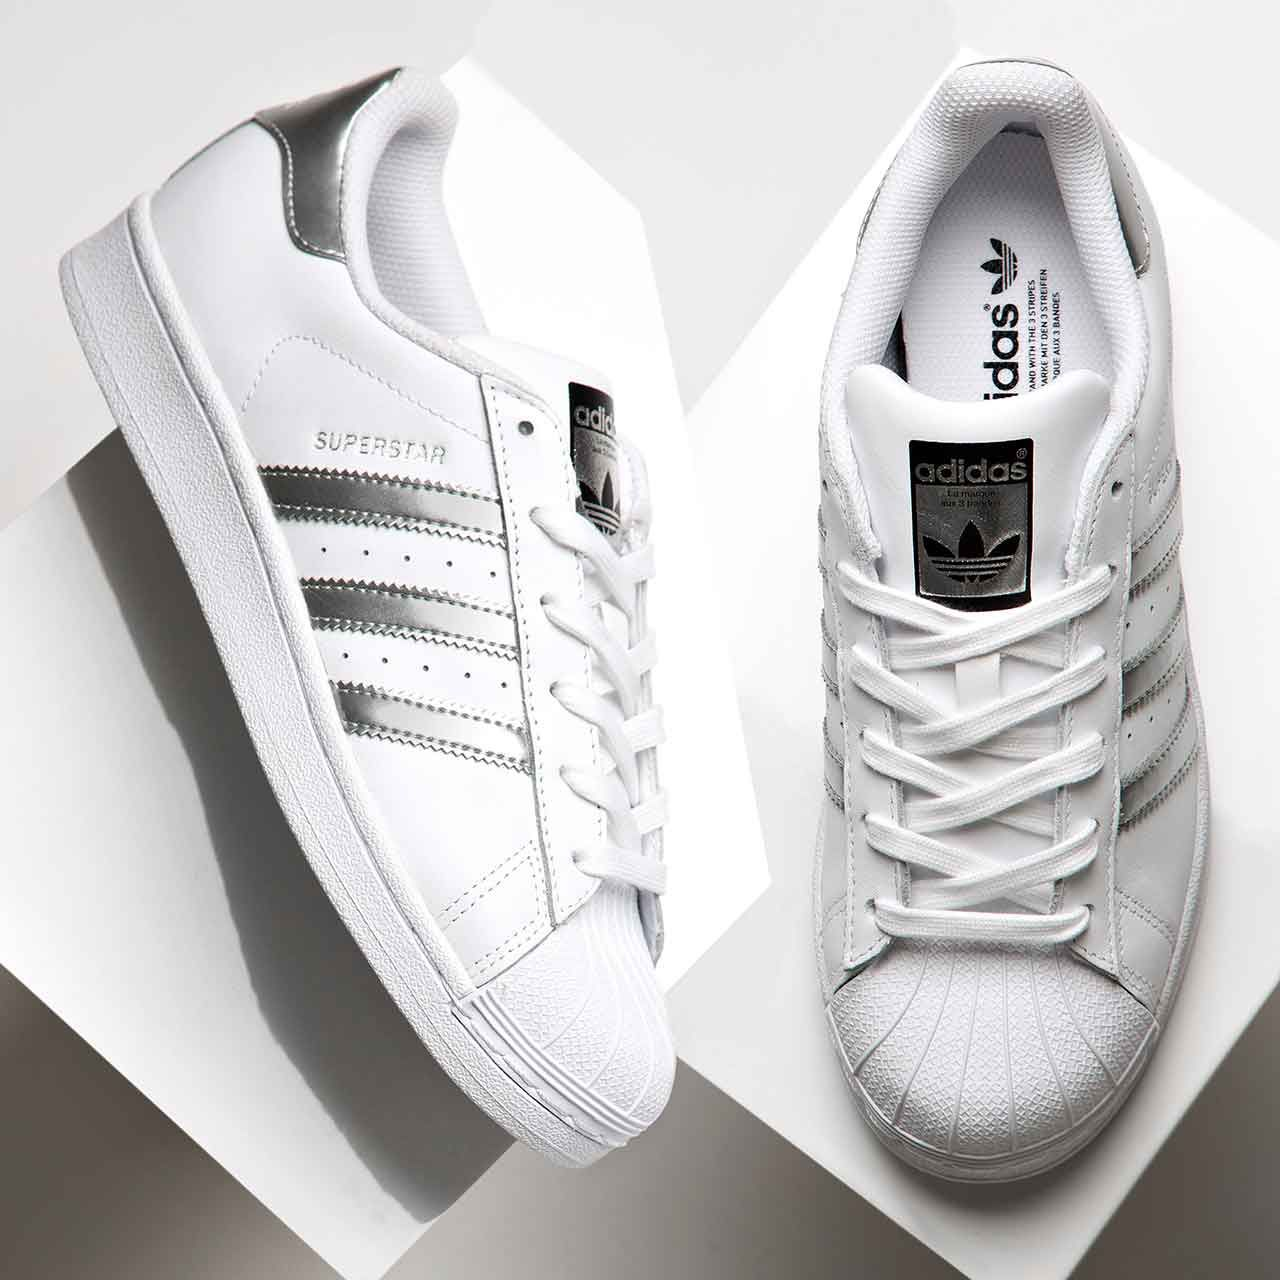 c994fb07ebc75 Add the adidas Originals Womens Superstar Metallic Trainer to your  collection.